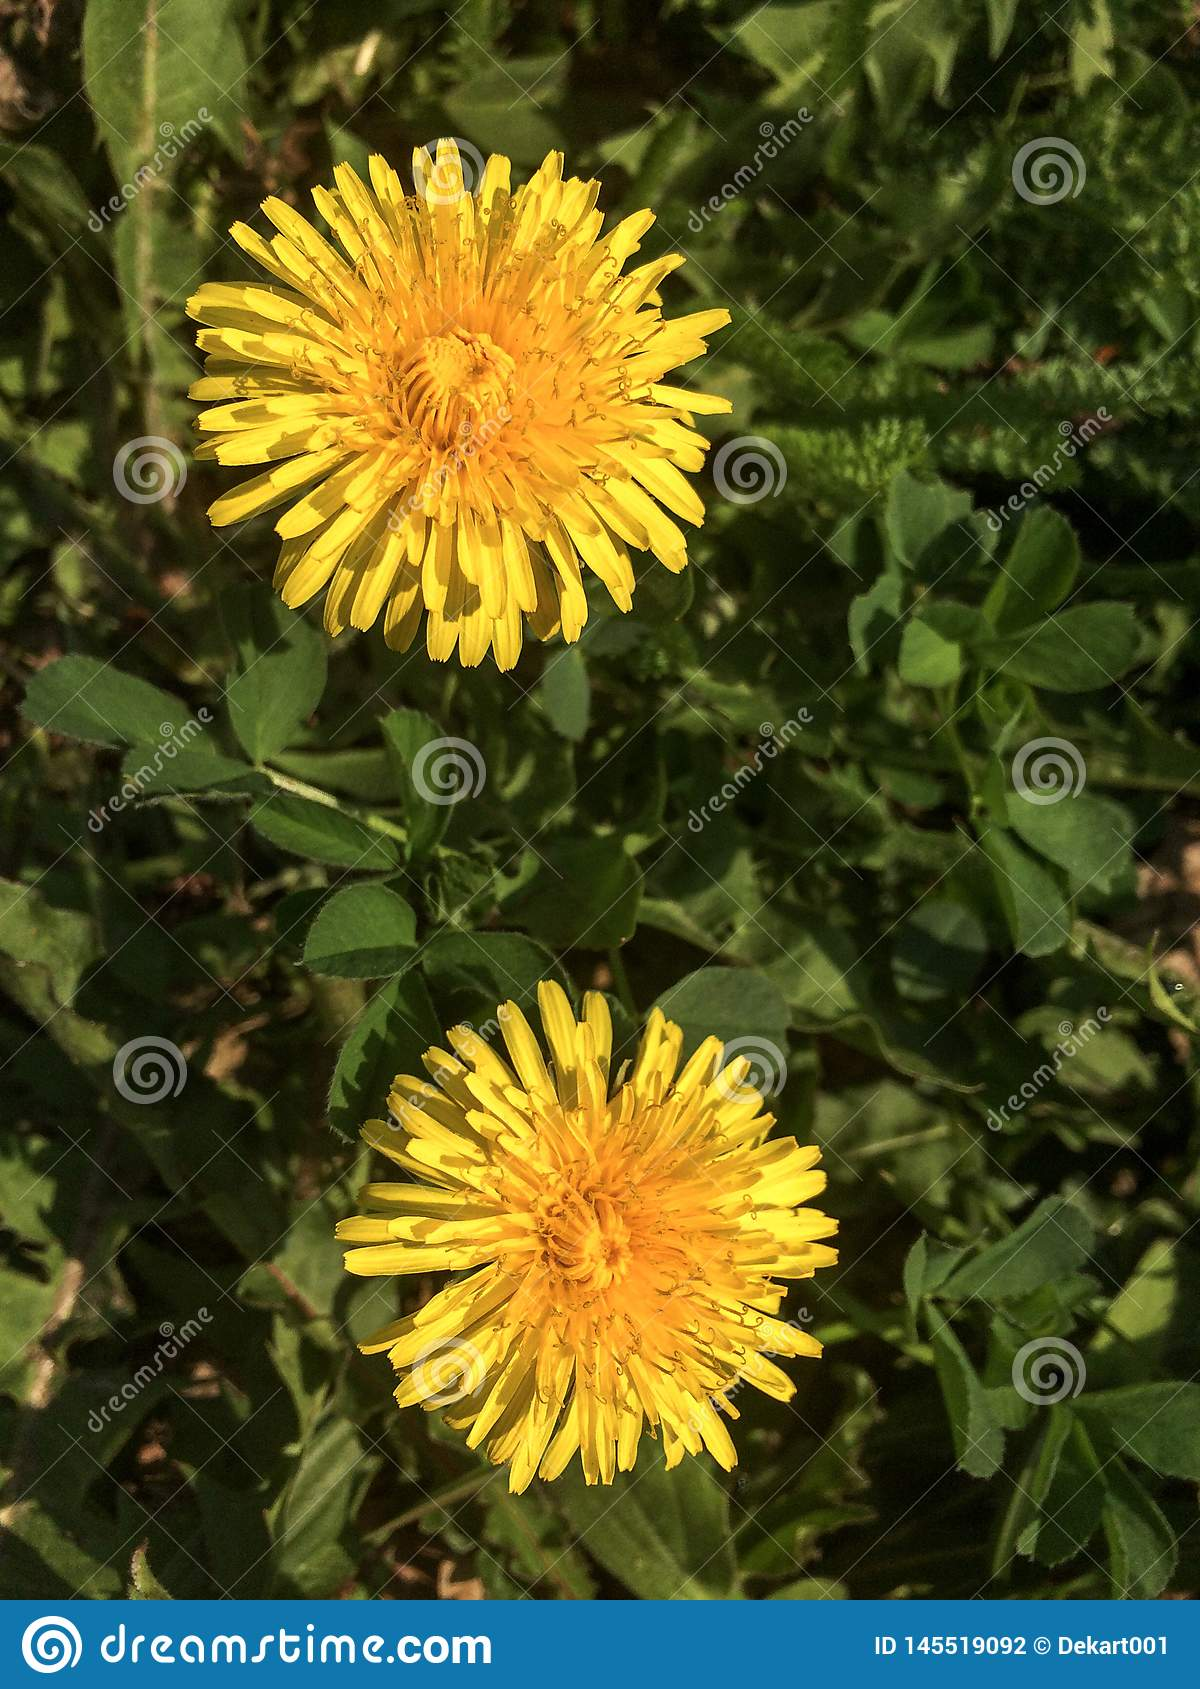 Two yellow blooming dandelions in a green lawn